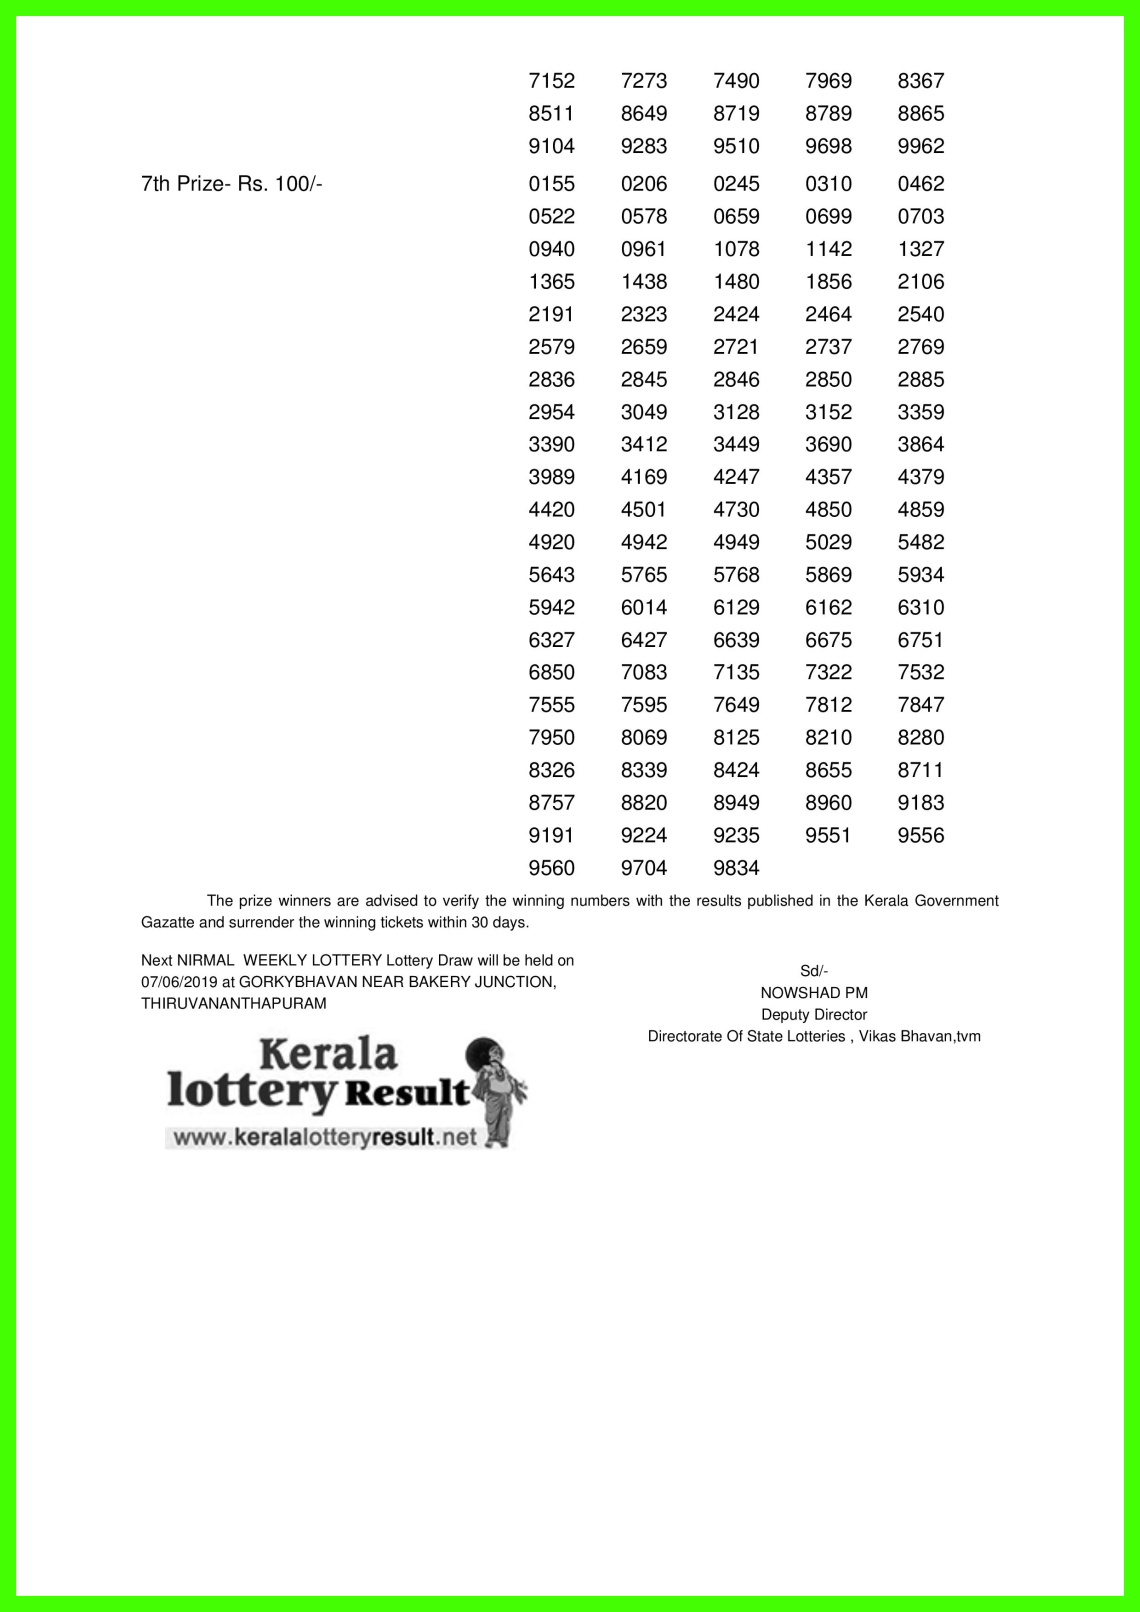 NIRMAL WEEKLY LOTTERY LOTTERY NO. NR-123rd DRAW held on 31.05.2019-page-002